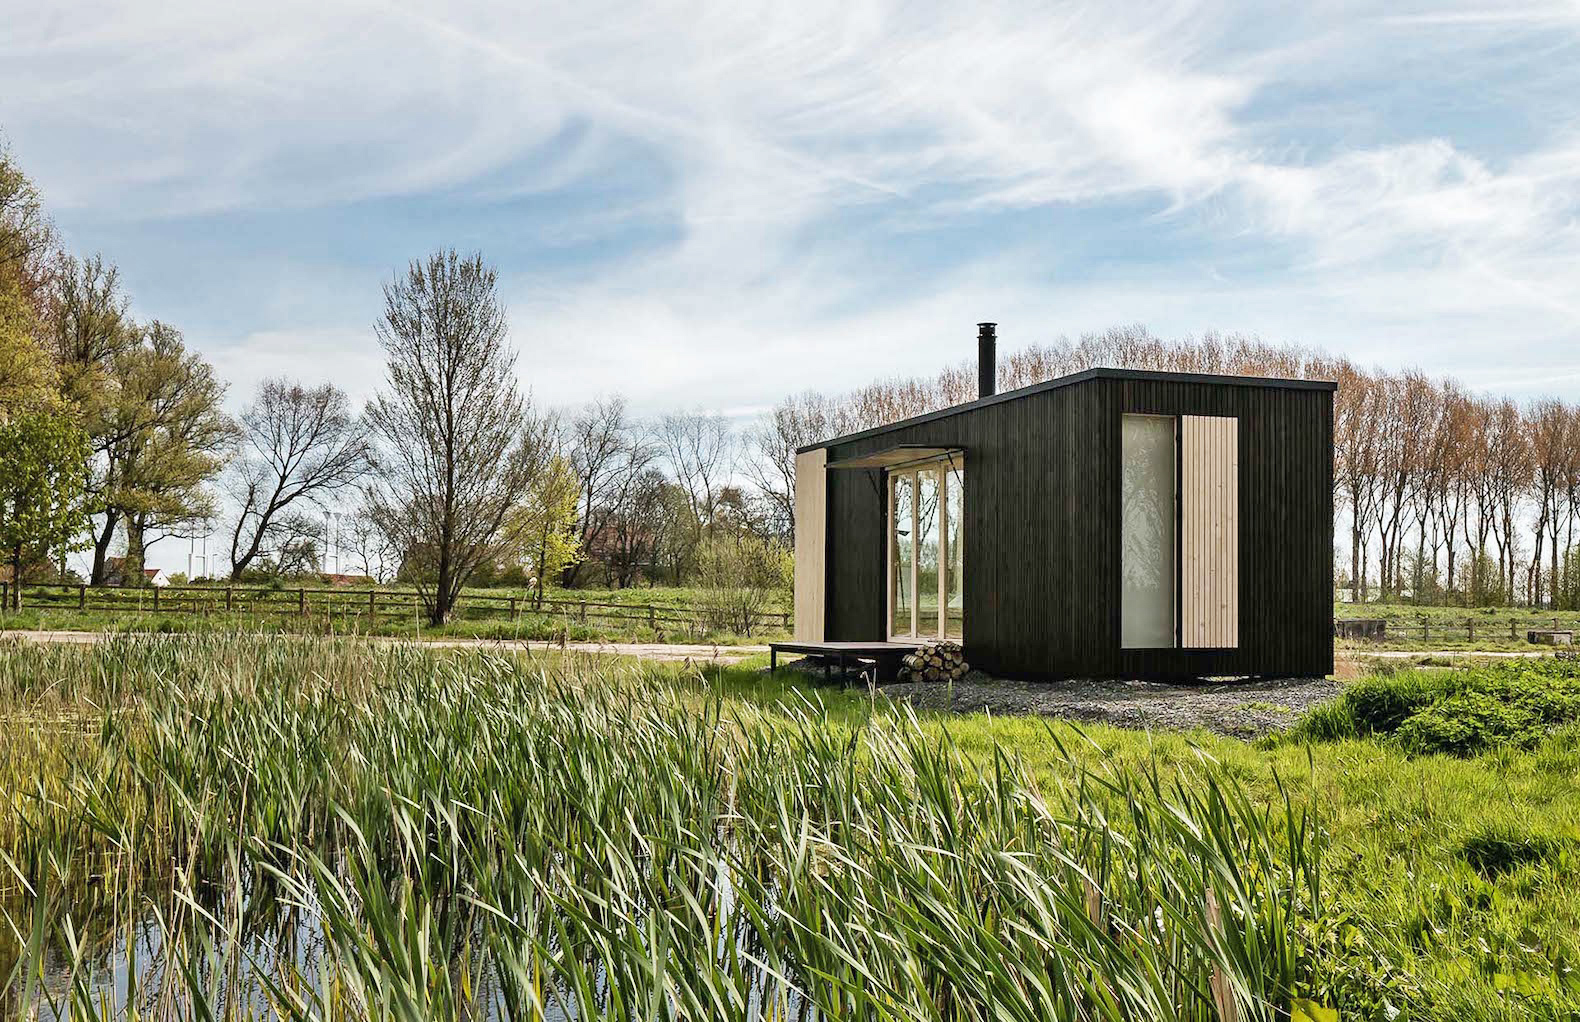 Prefab tiny house on wheels kits - Escape City Life In A Luxe Off Grid Cabin That Can Pop Up Almost Anywhere